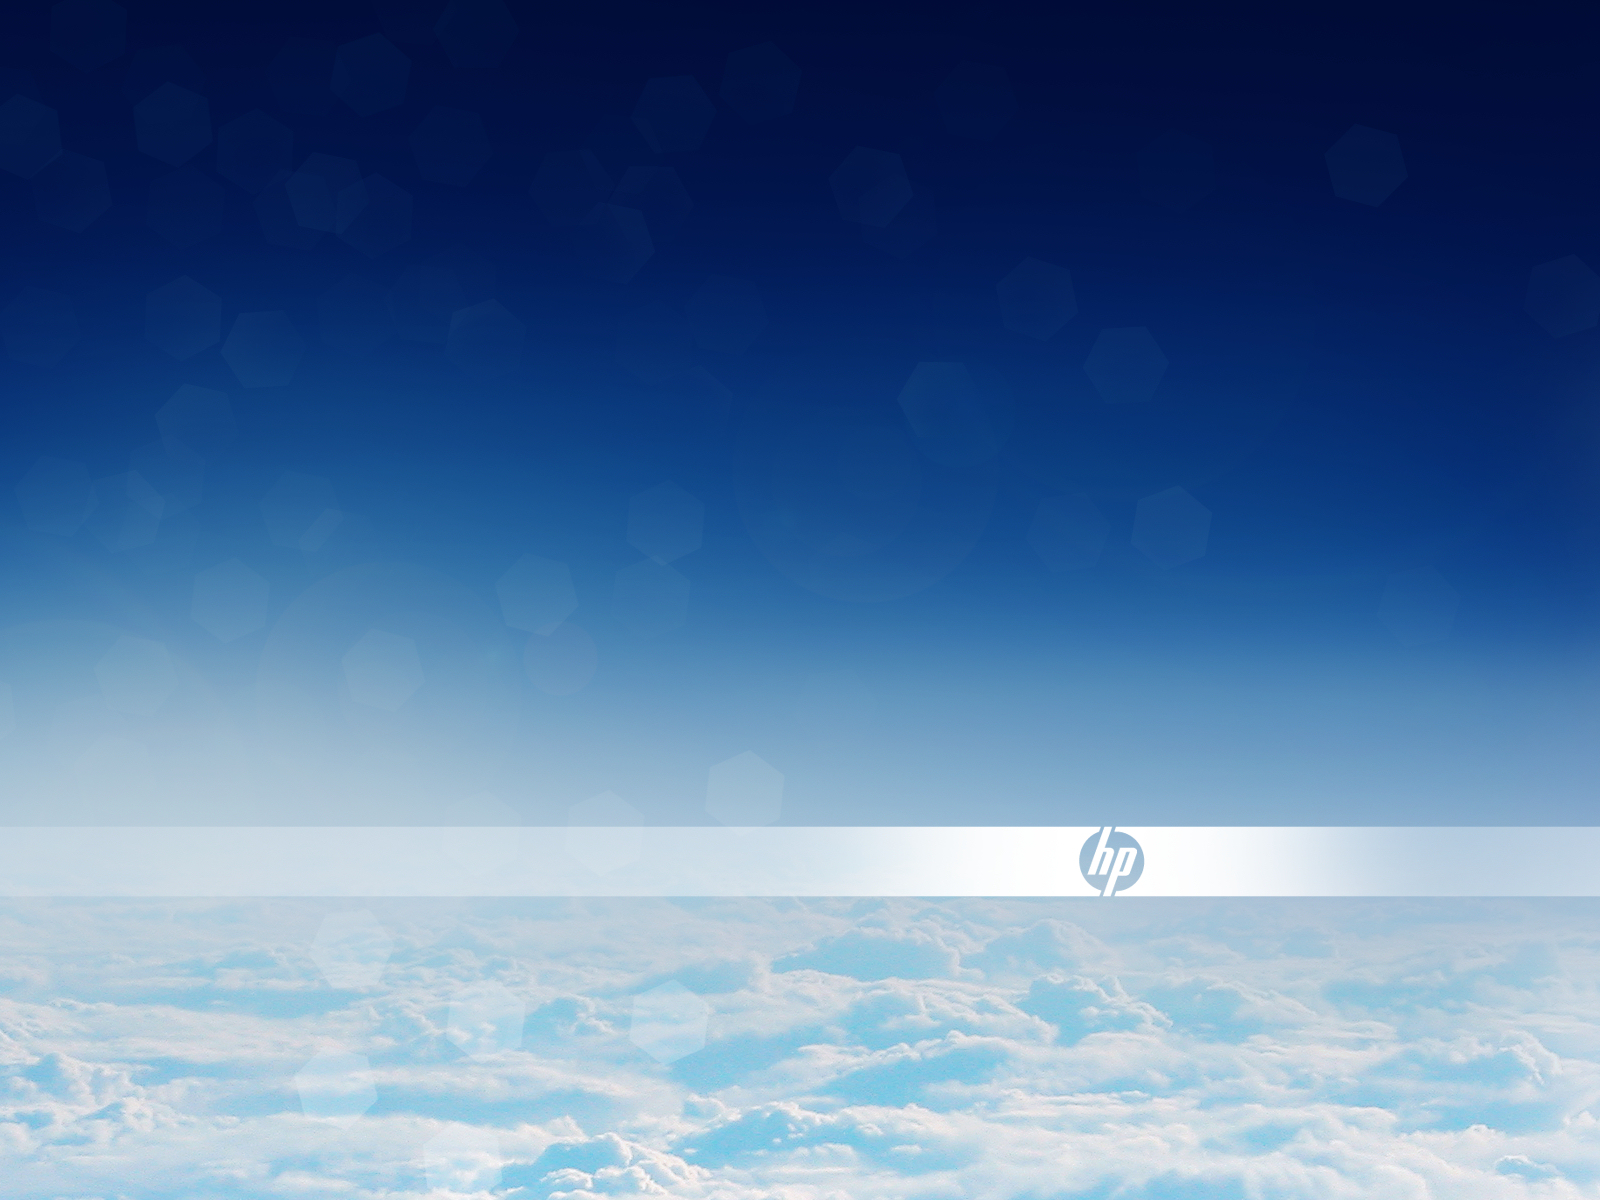 through our selection of HP wallpapers Select your HP wallpaper 1600x1200